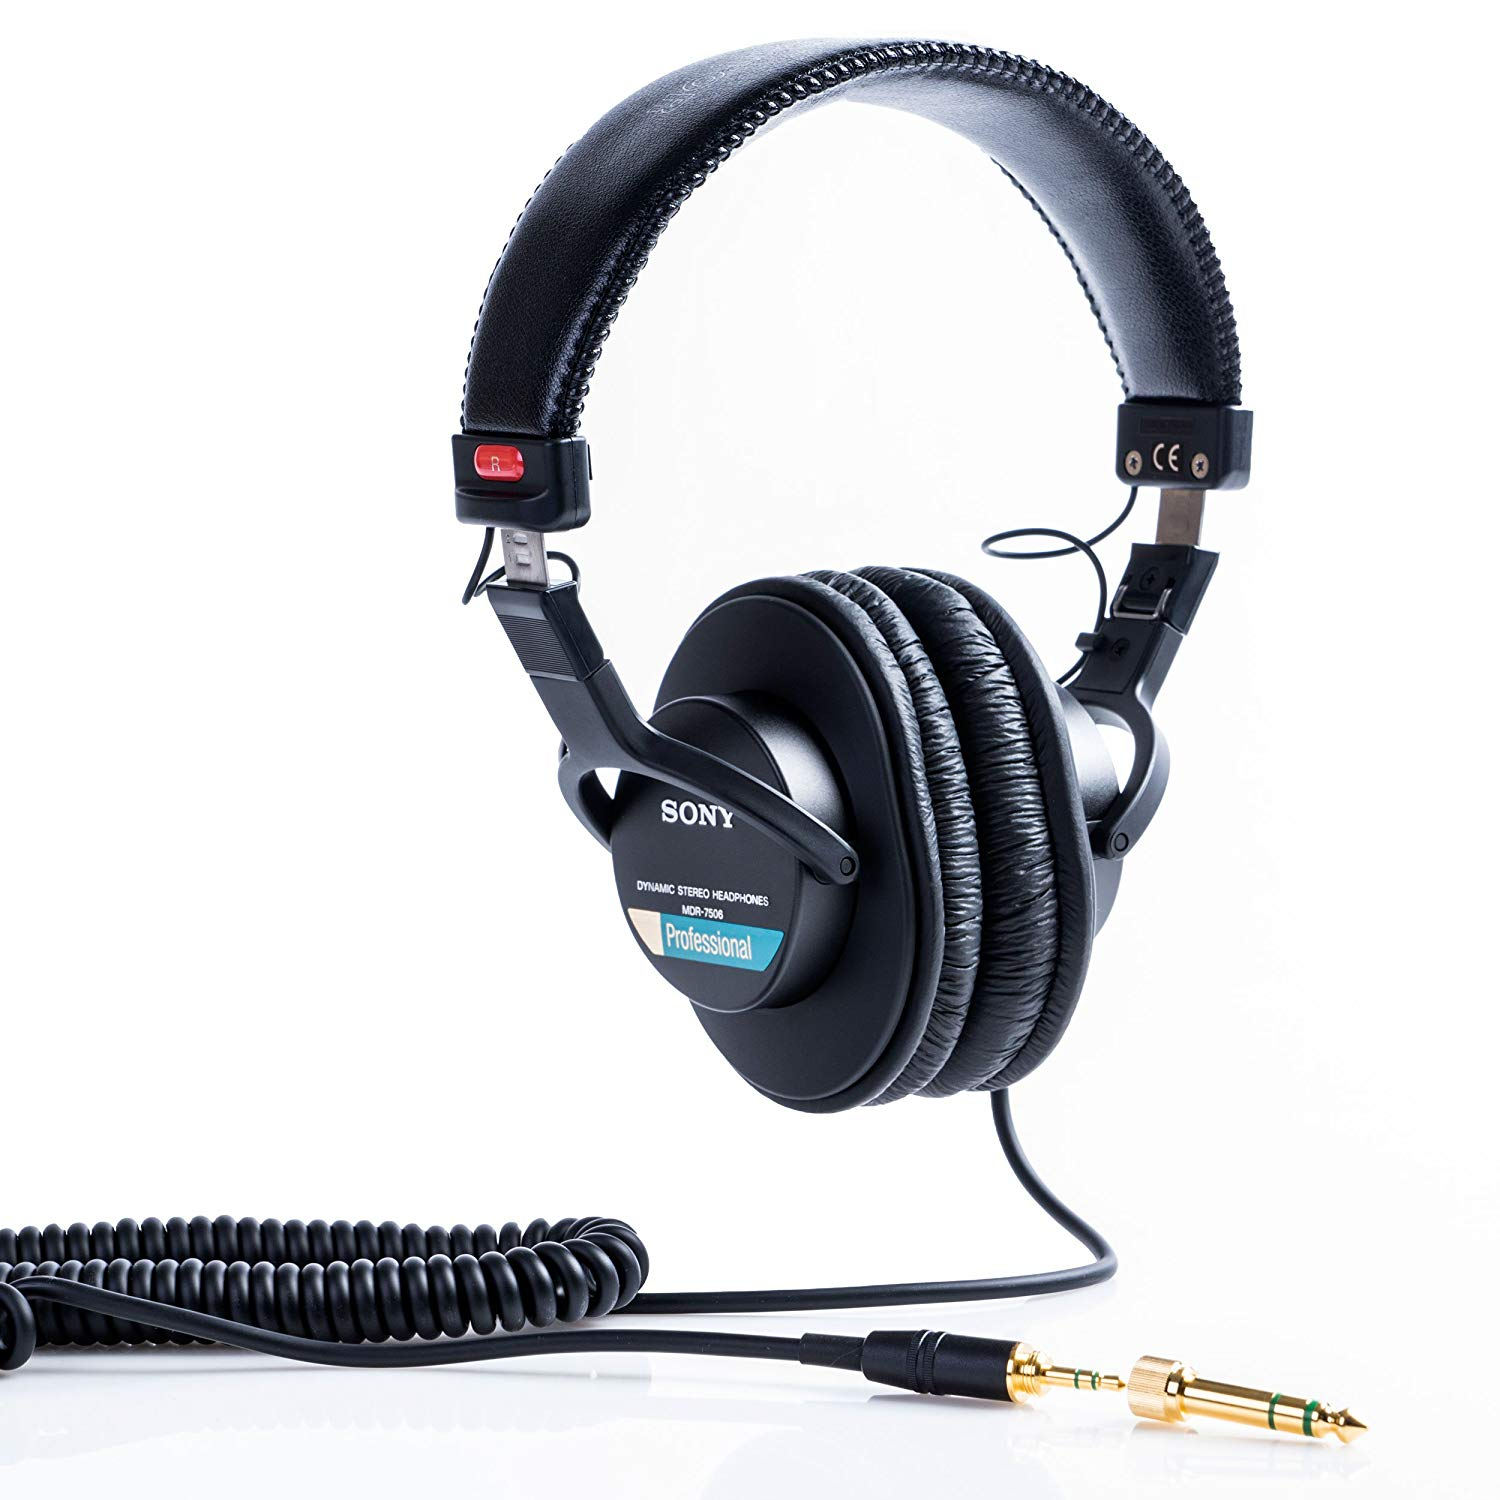 Best Headphones For Students 2019 Noise Cancellation For The Win